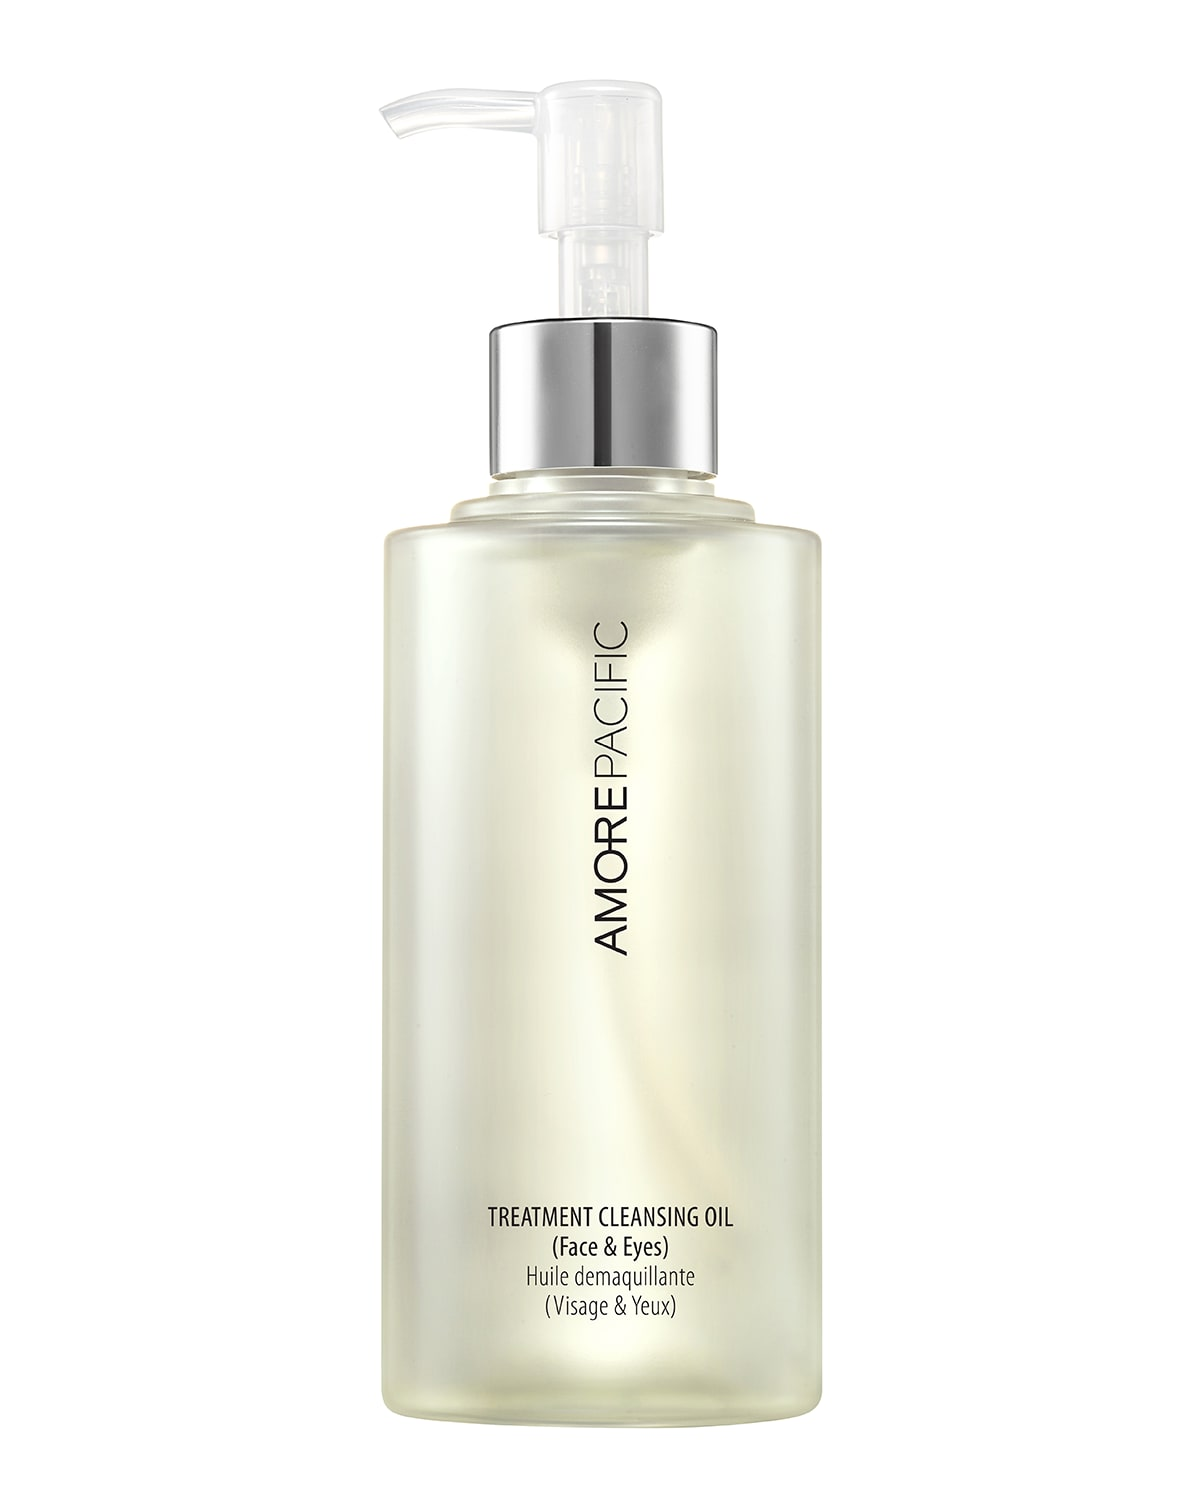 6.8 oz. Treatment Cleansing Oil